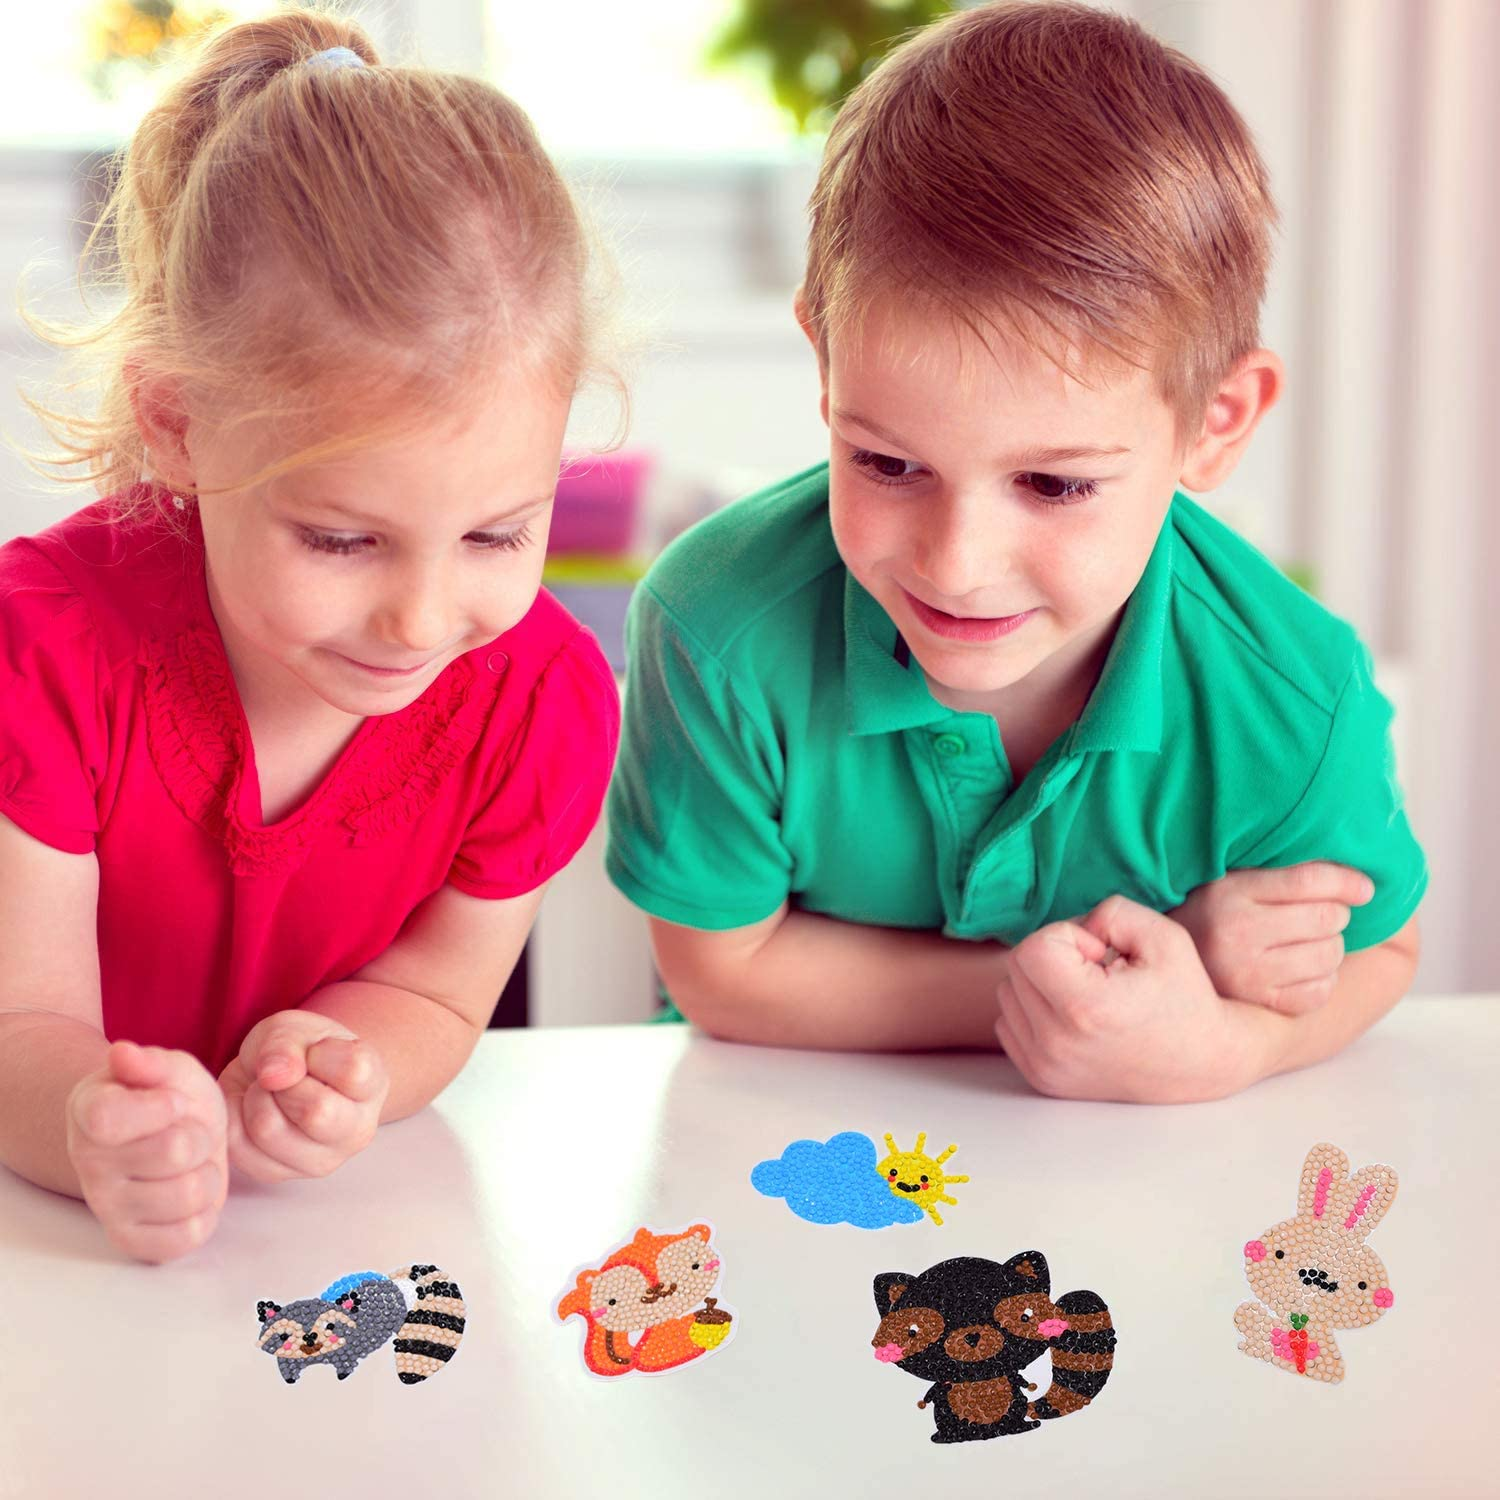 30PCS Diamond Painting Kits for Kids 5D Mosaic Animal Stickers Craft Handmade Art Family Activities Supplies